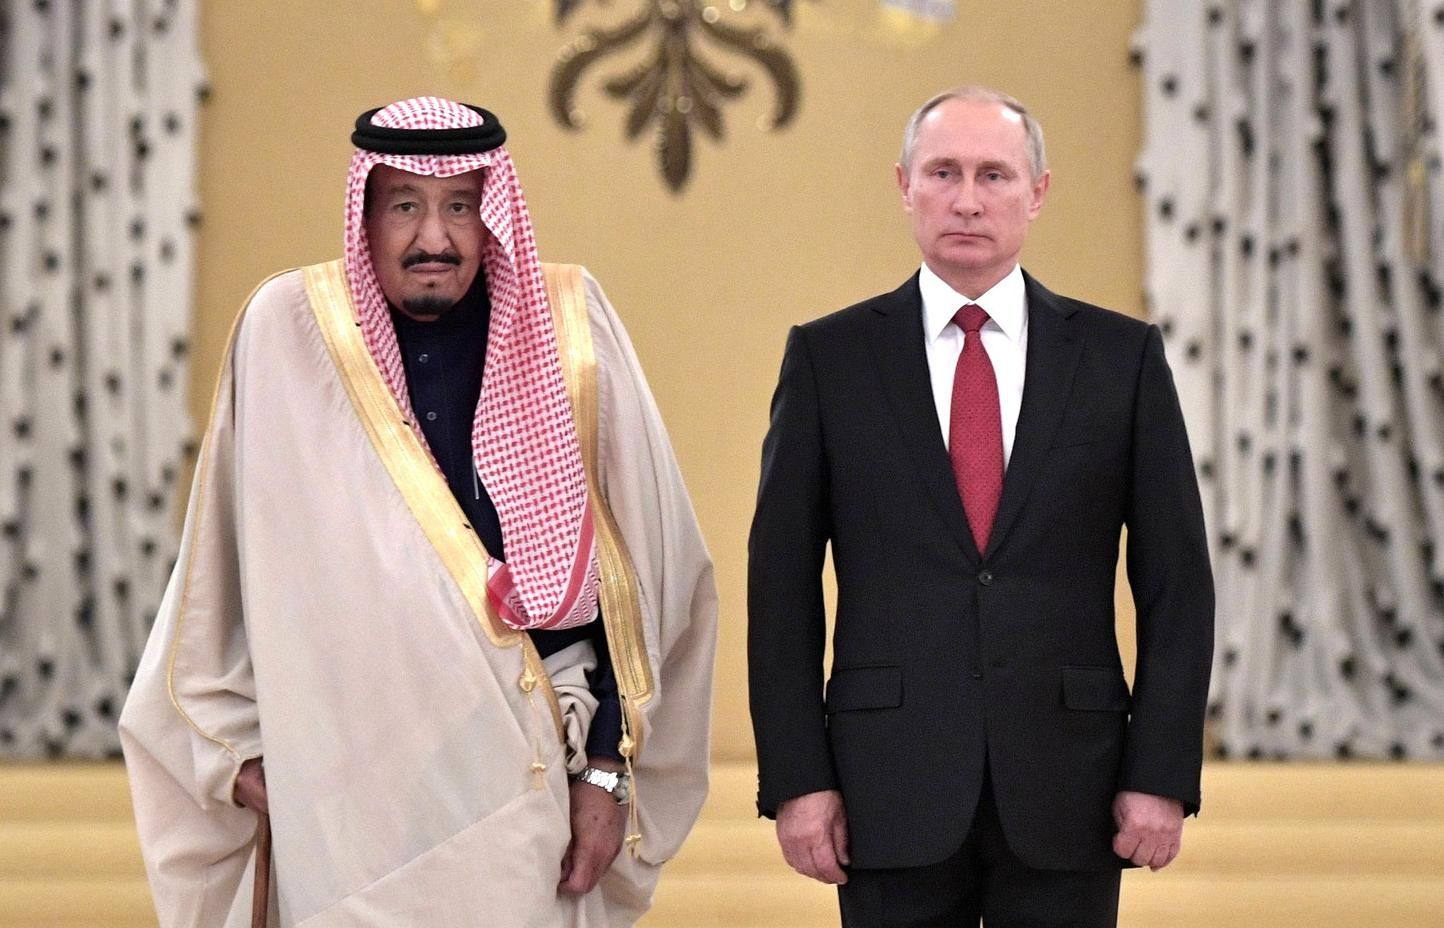 What S Behind The Saudi King S Historic Visit To Russia Op Ed Russia Saudi Arabia Historical